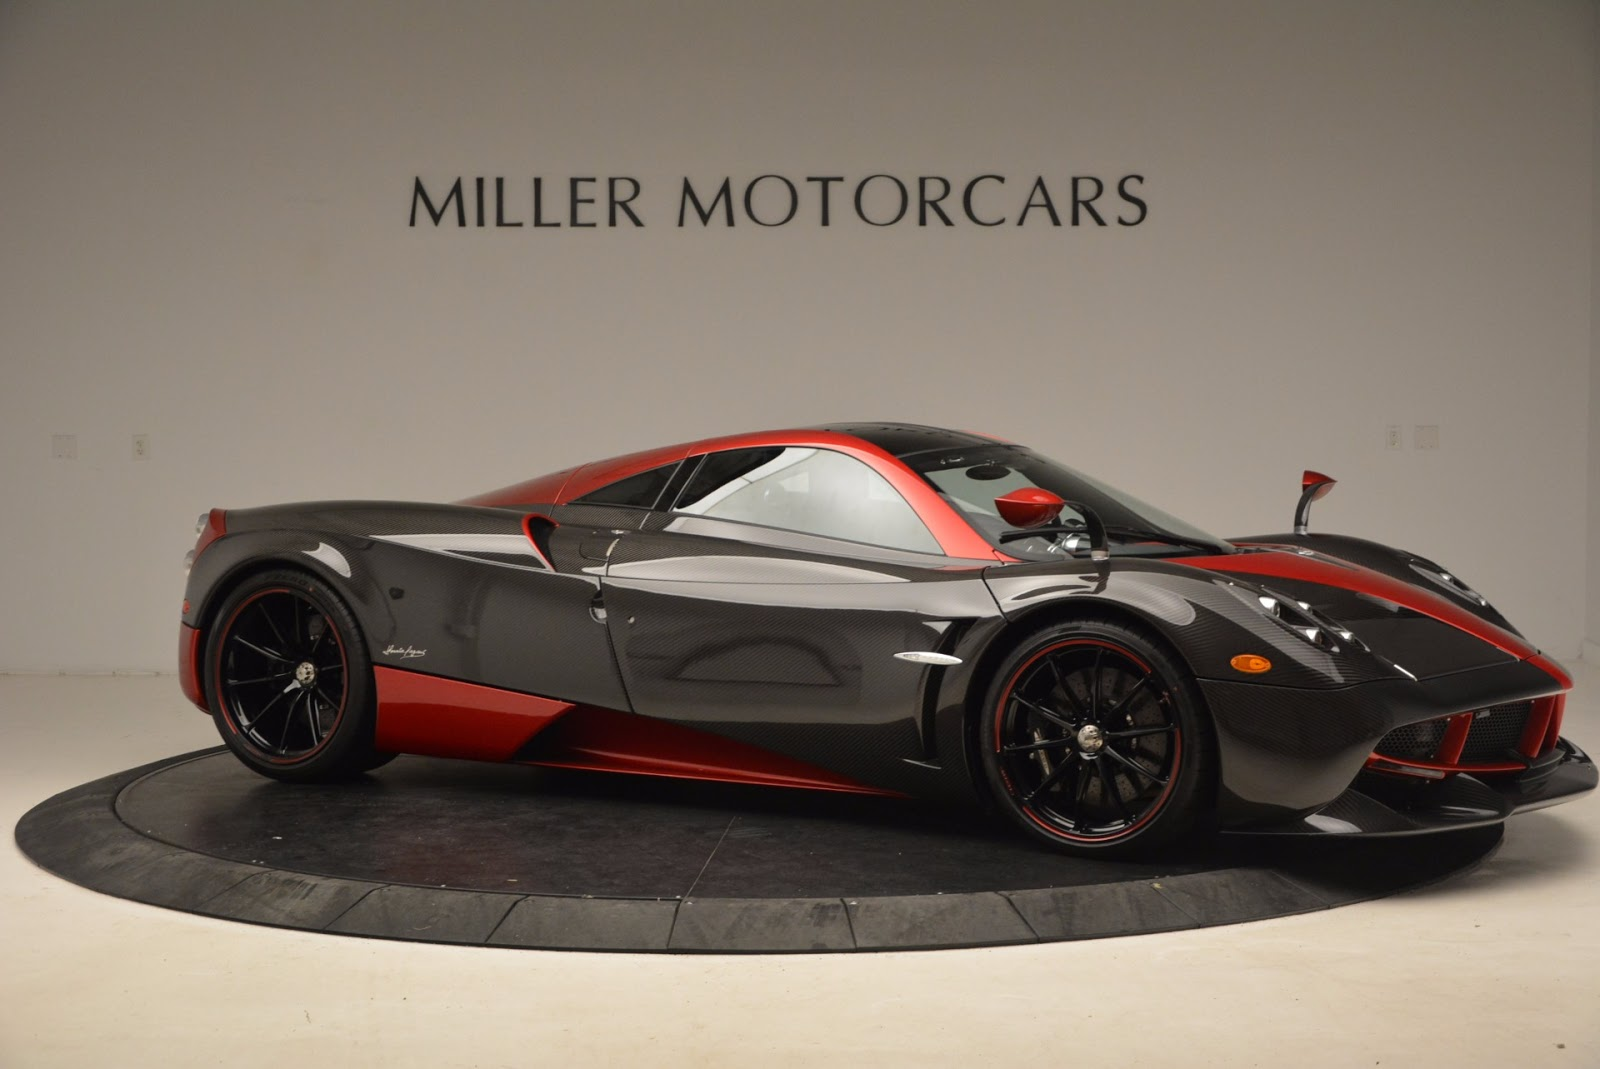 Used Mazda Cx-5 >> Stunning Red And Carbon Fiber Pagani Huayra For Sale In ...